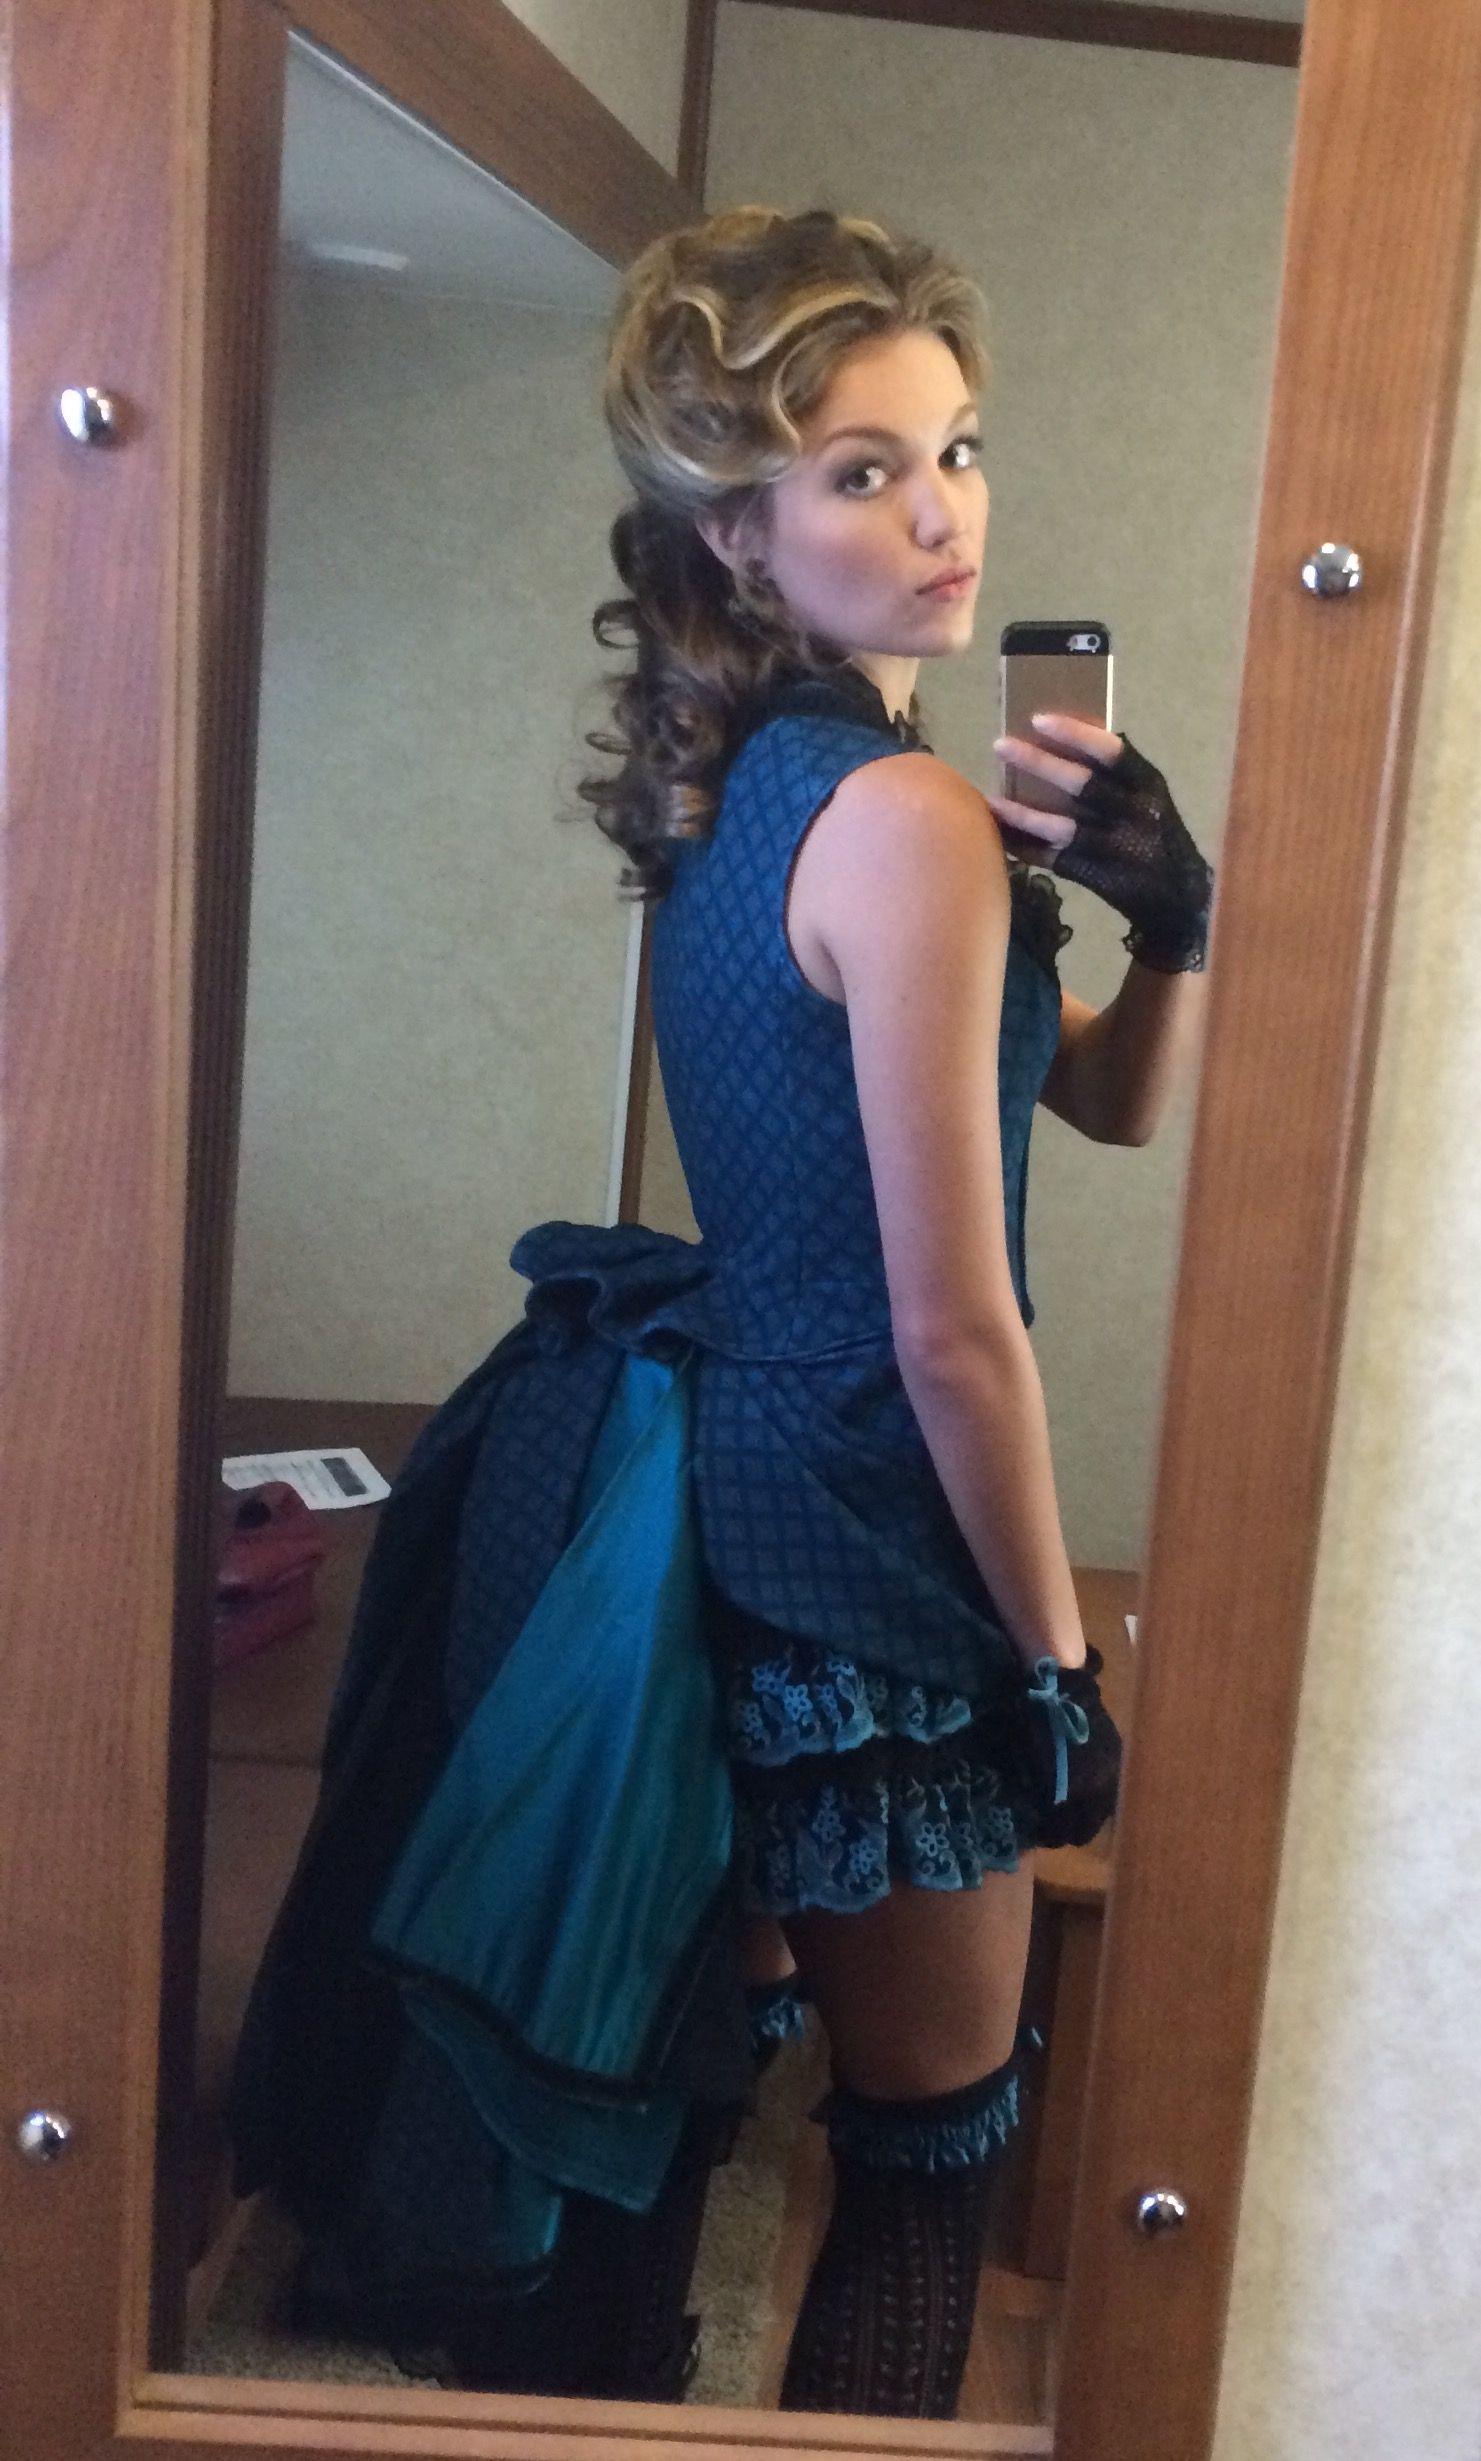 Lili-Simmons-Leaked-55-thefappening.nu_296e8.jpg